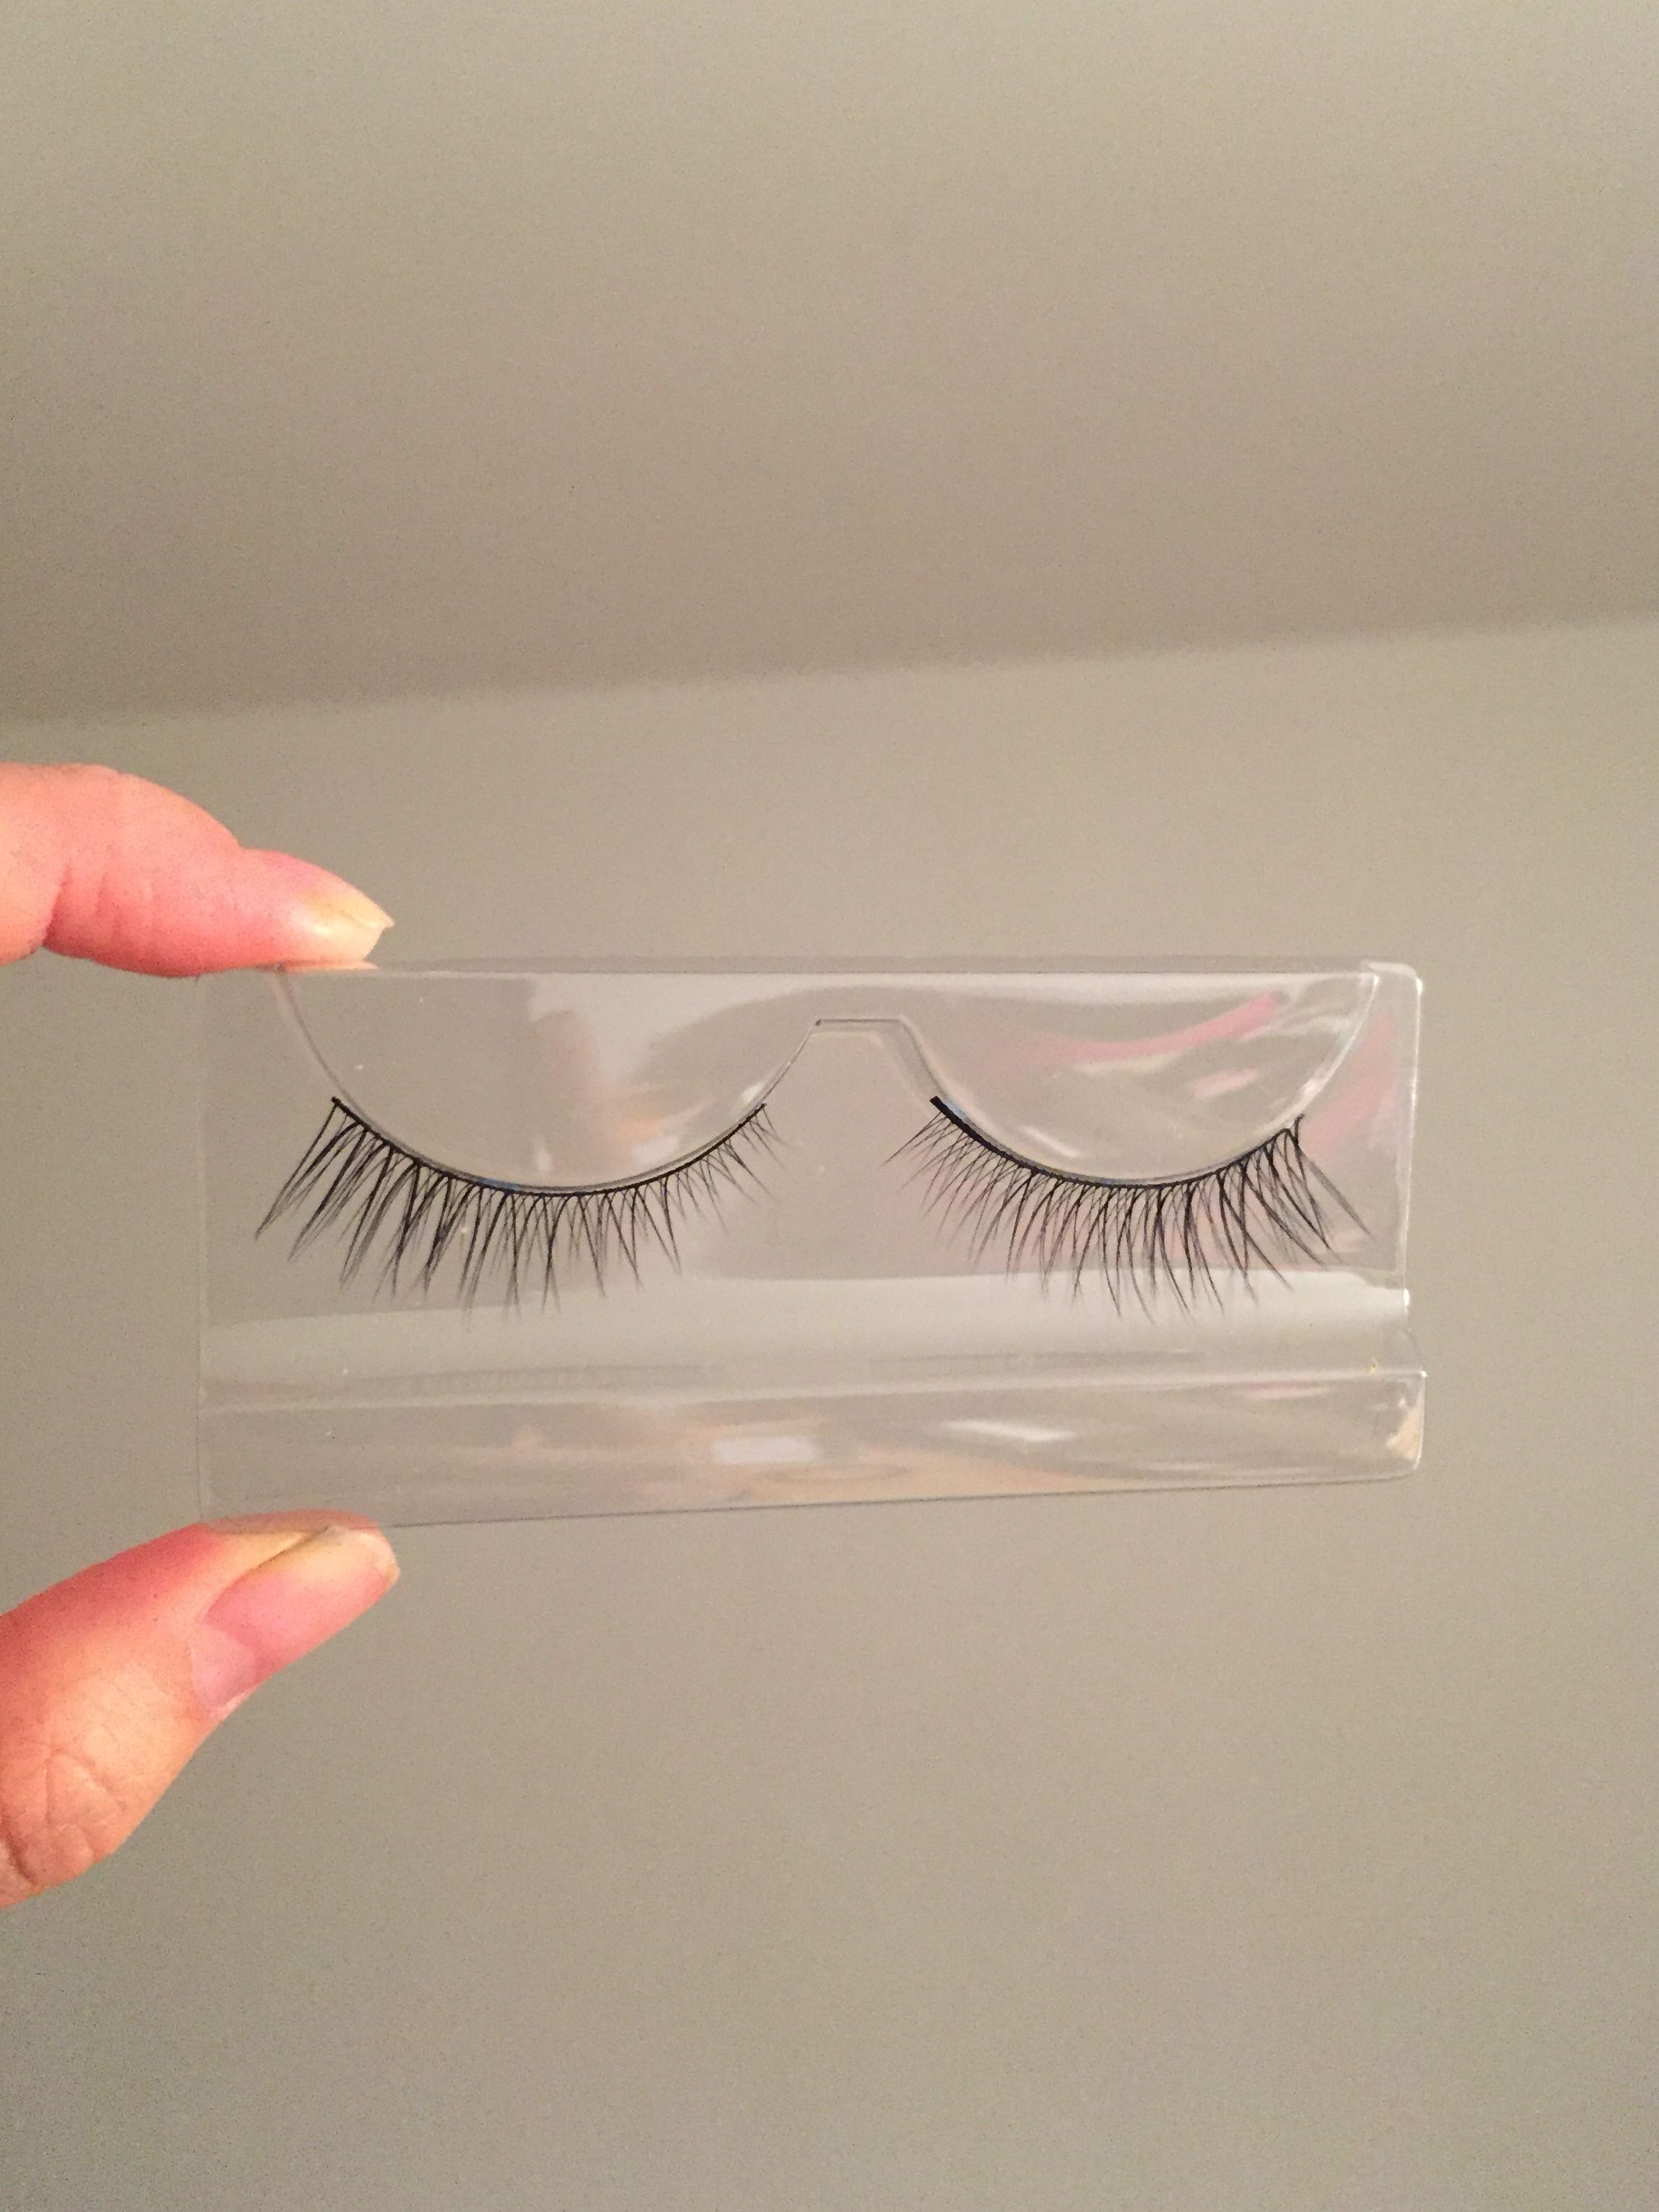 suuper cute fake eyelashes